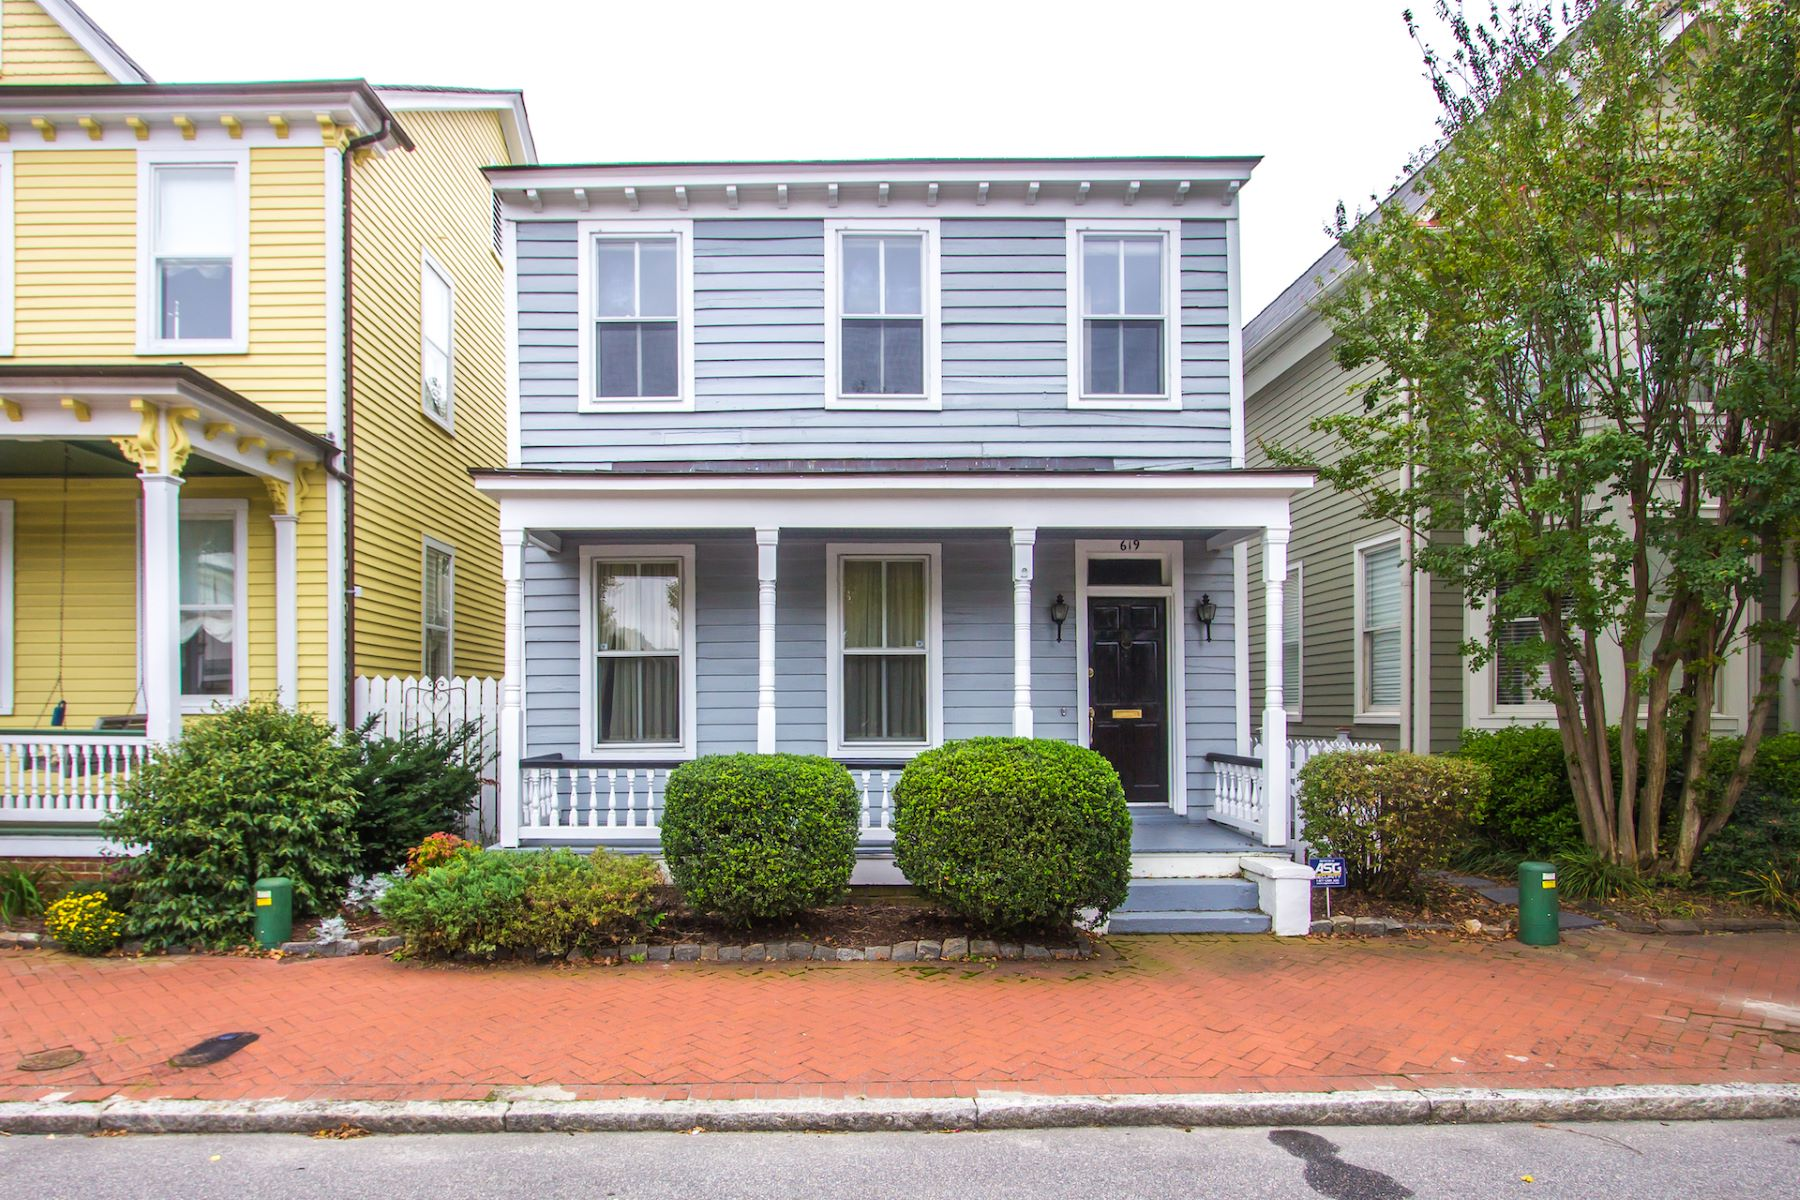 single family homes для того Продажа на OLDE TOWNE 619 London Street Portsmouth, Виргиния 23704 Соединенные Штаты